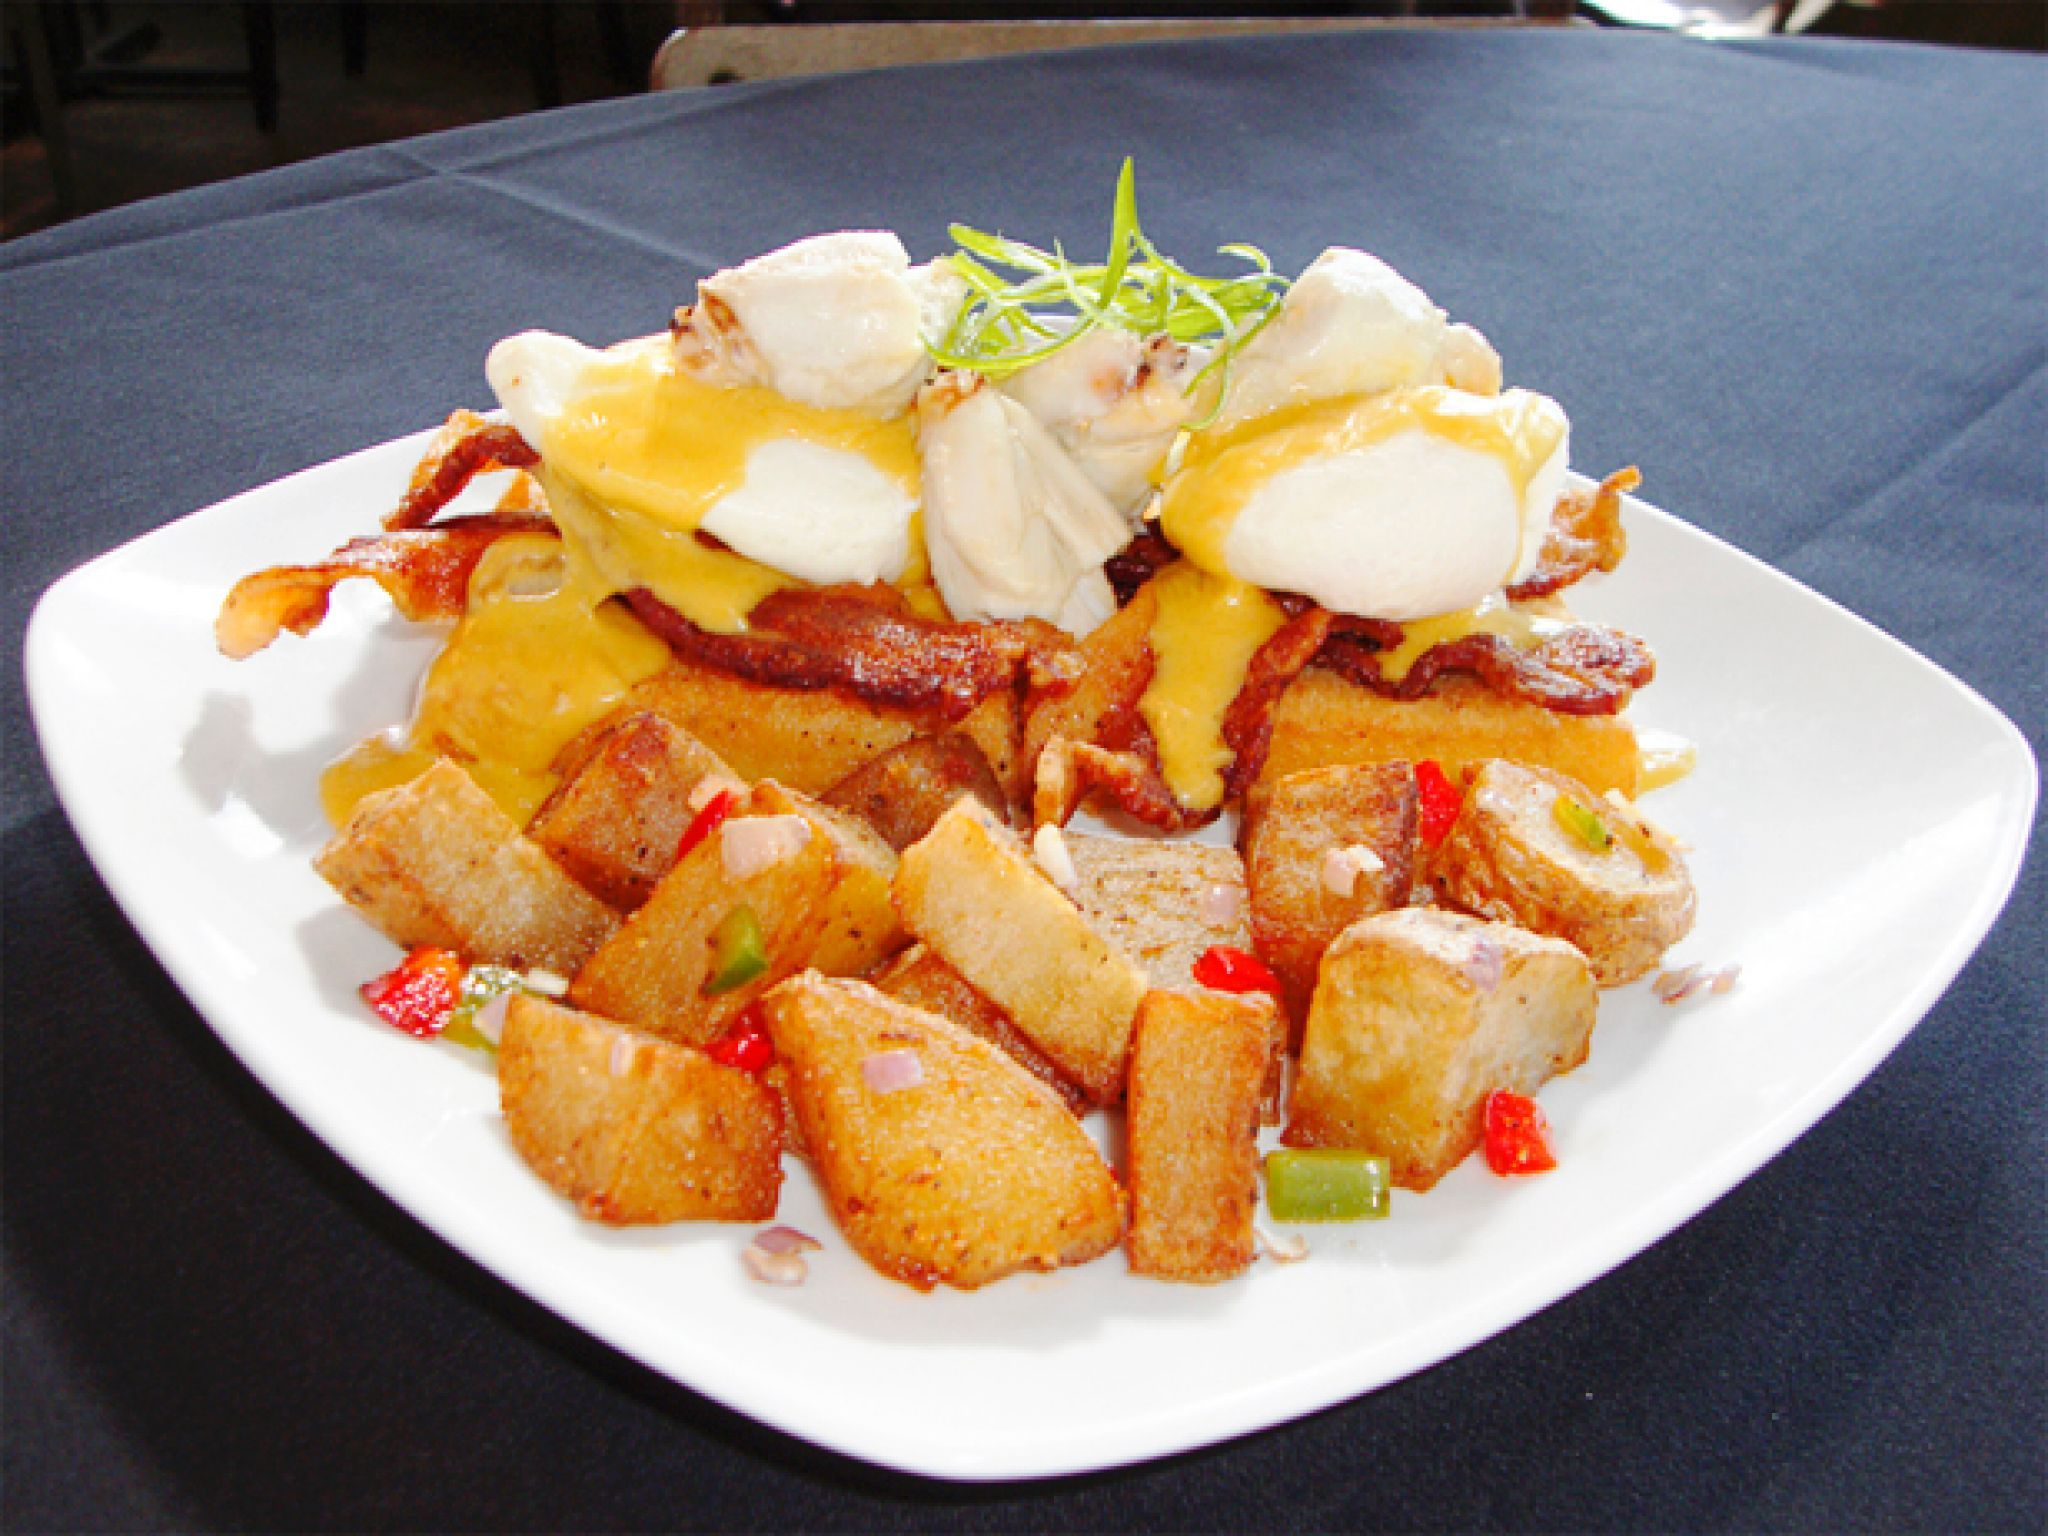 50 states 50 breakfasts mobile alabama hollandaise sauce and egg 50 states 50 breakfasts forumfinder Image collections